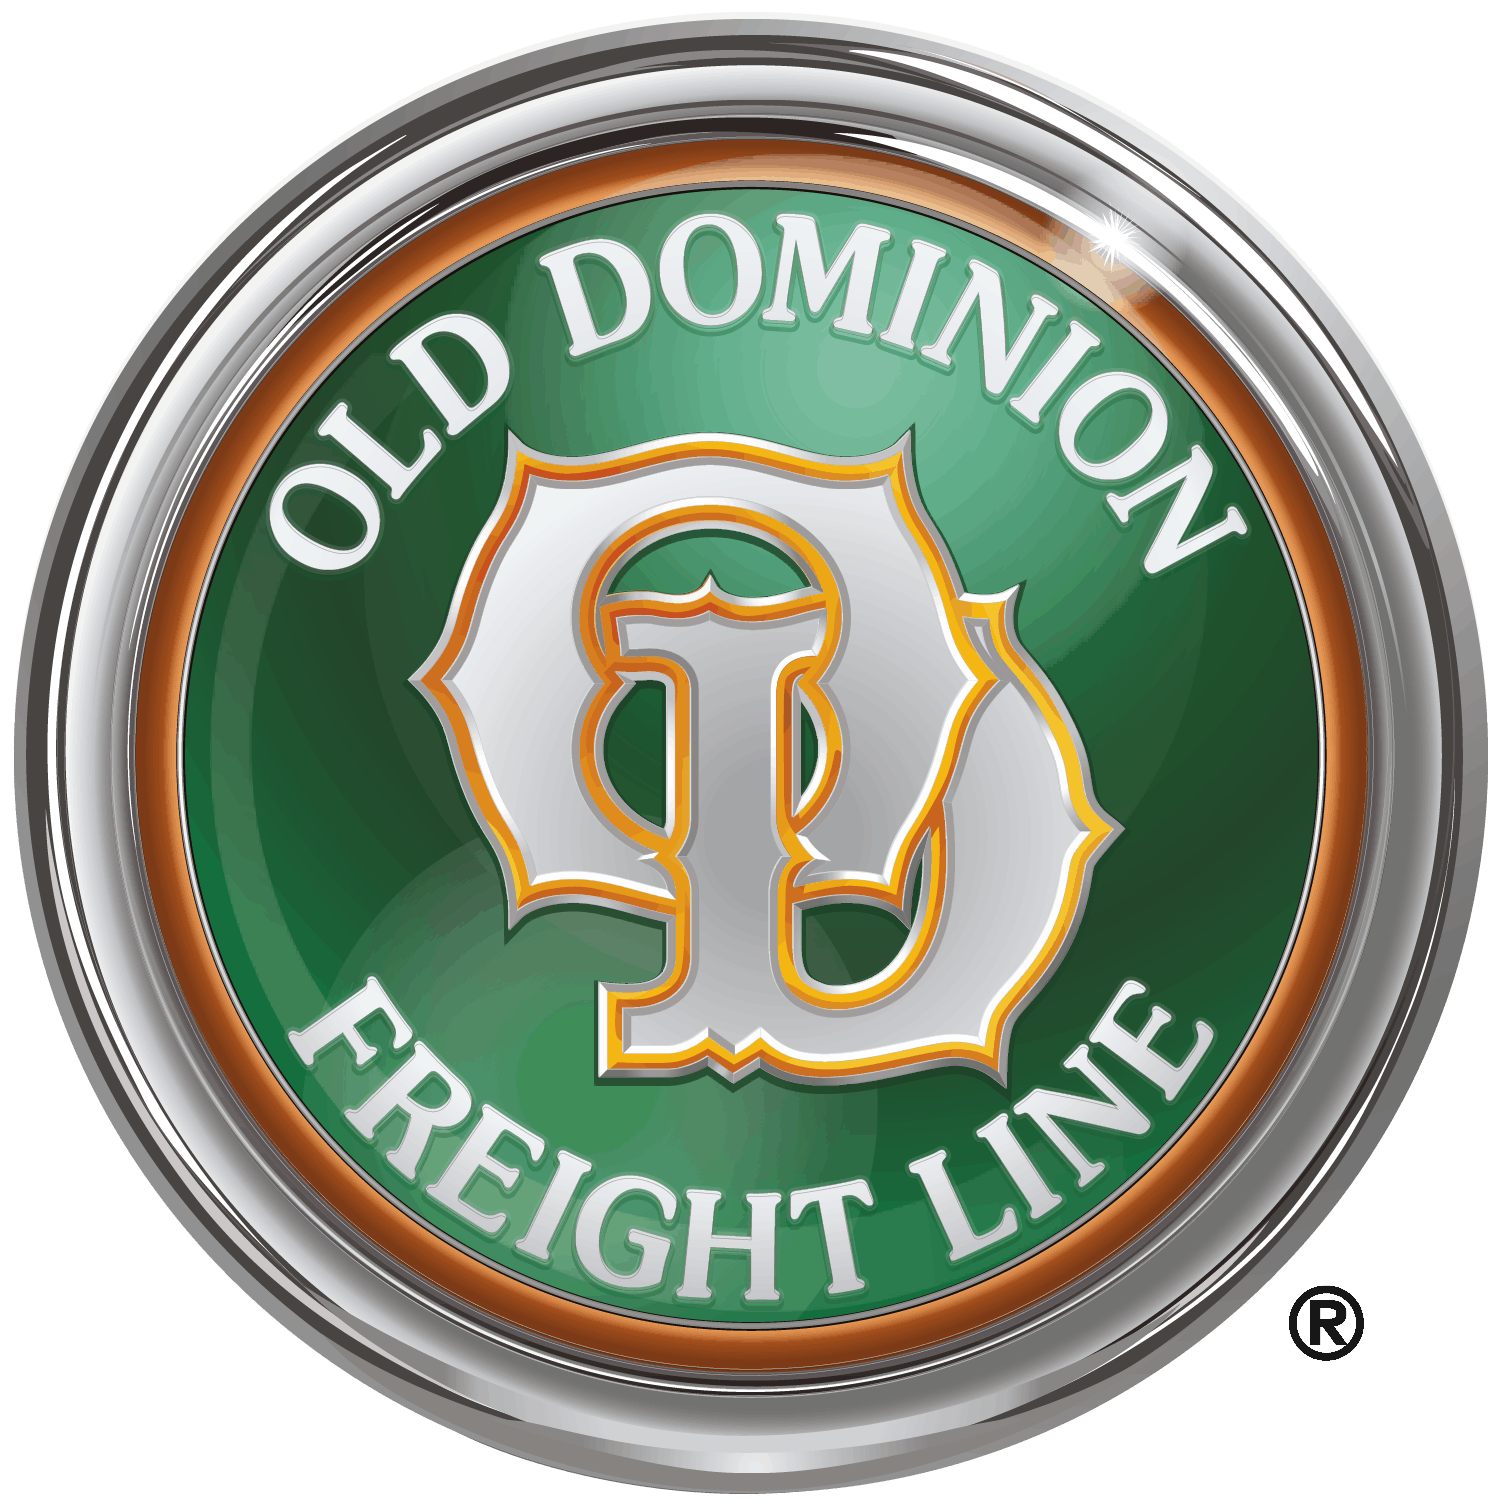 Old Dominion Freight Line Logo png